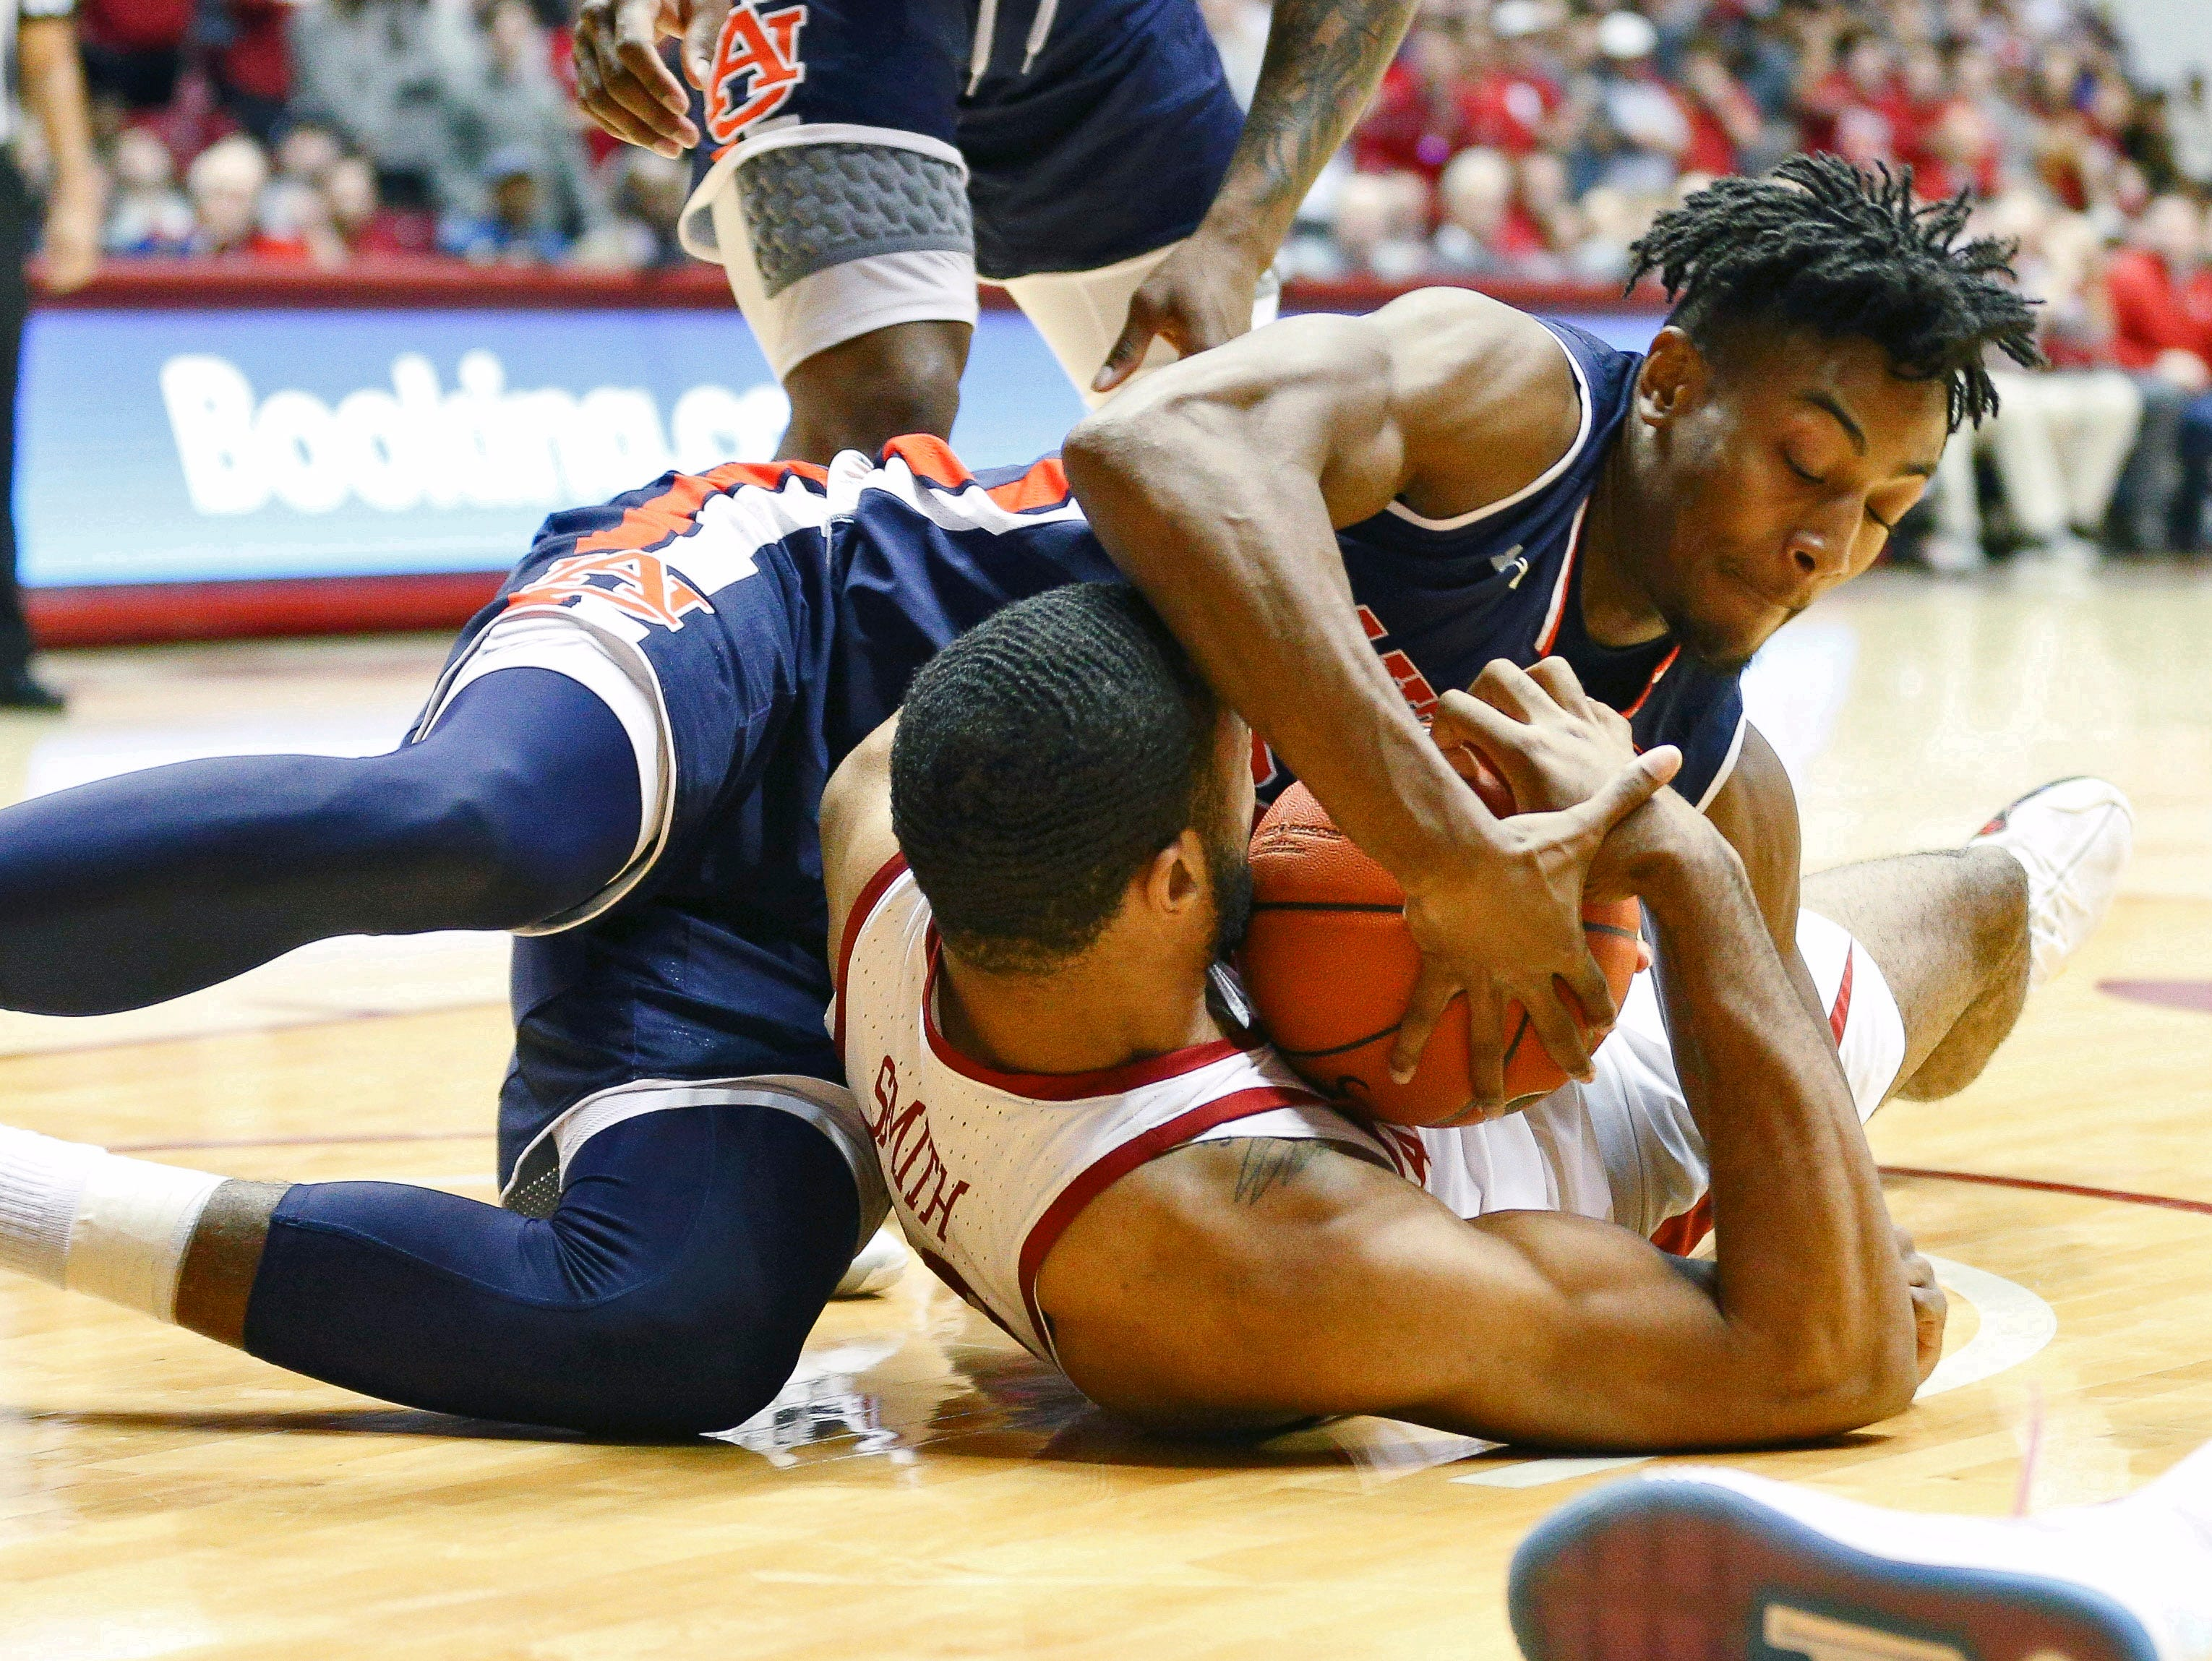 Mar 5, 2019; Tuscaloosa, AL, USA; Alabama Crimson Tide forward Galin Smith (30) fights for the ball against Auburn Tigers forward Anfernee McLemore (24) during the second half at Coleman Coliseum. Mandatory Credit: Marvin Gentry-USA TODAY Sports